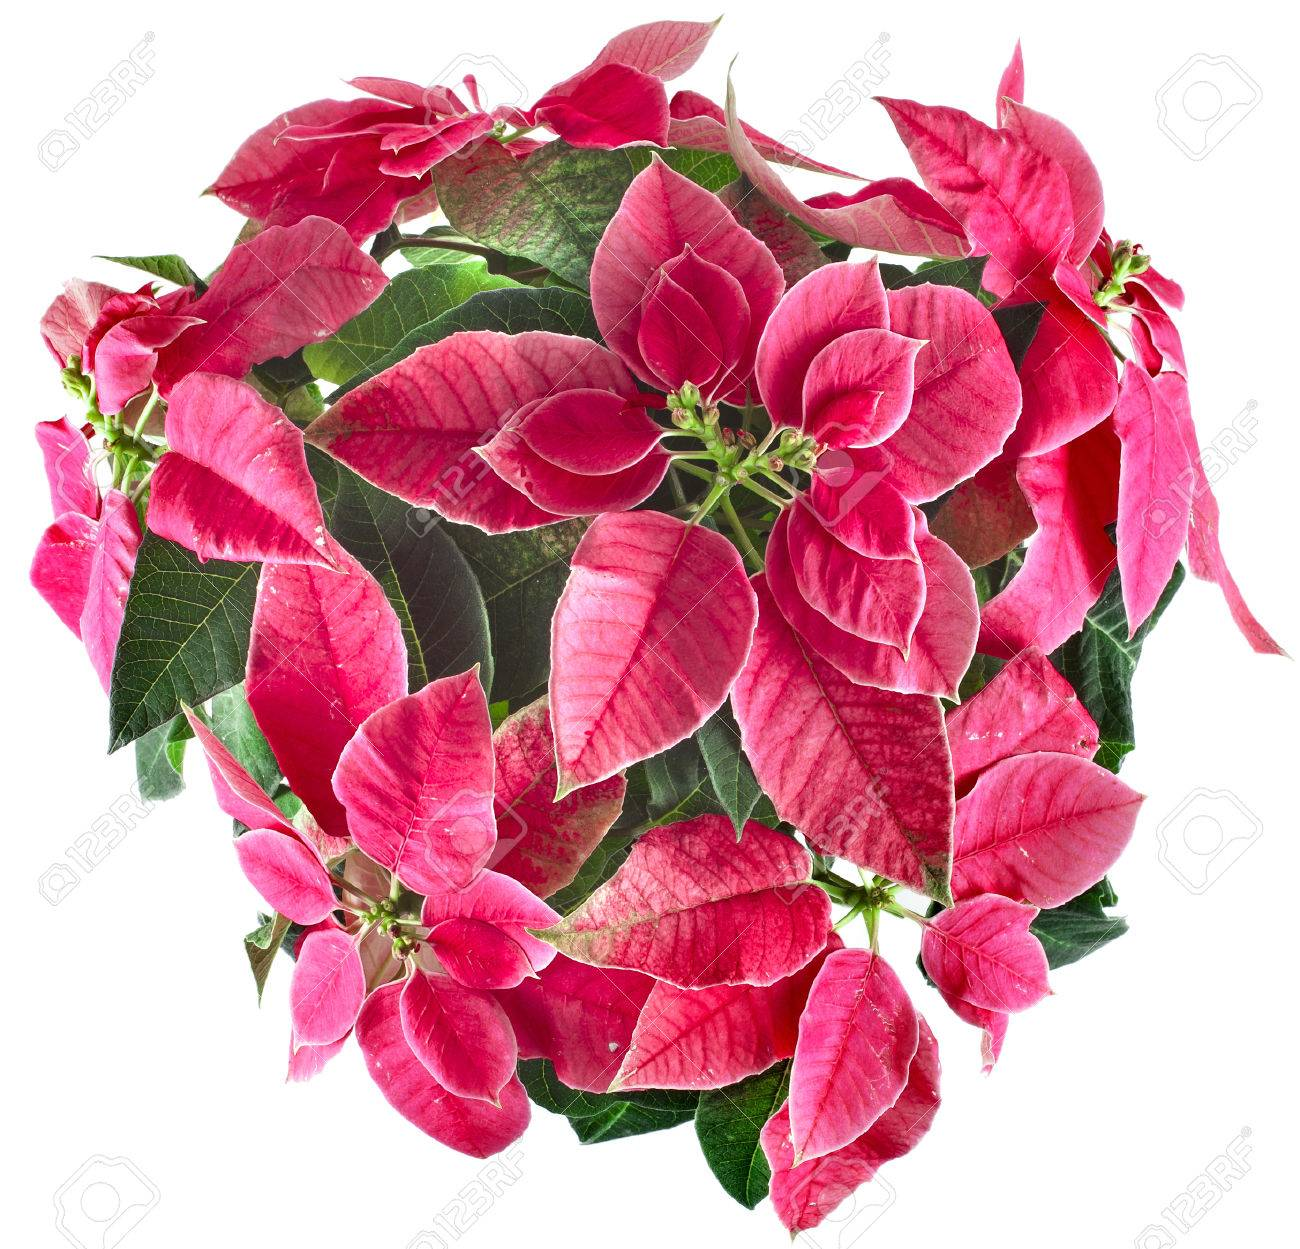 Christmas Flower Pots.Christmas Flower Poinsettia Group In Flower Pot Top View Isolated